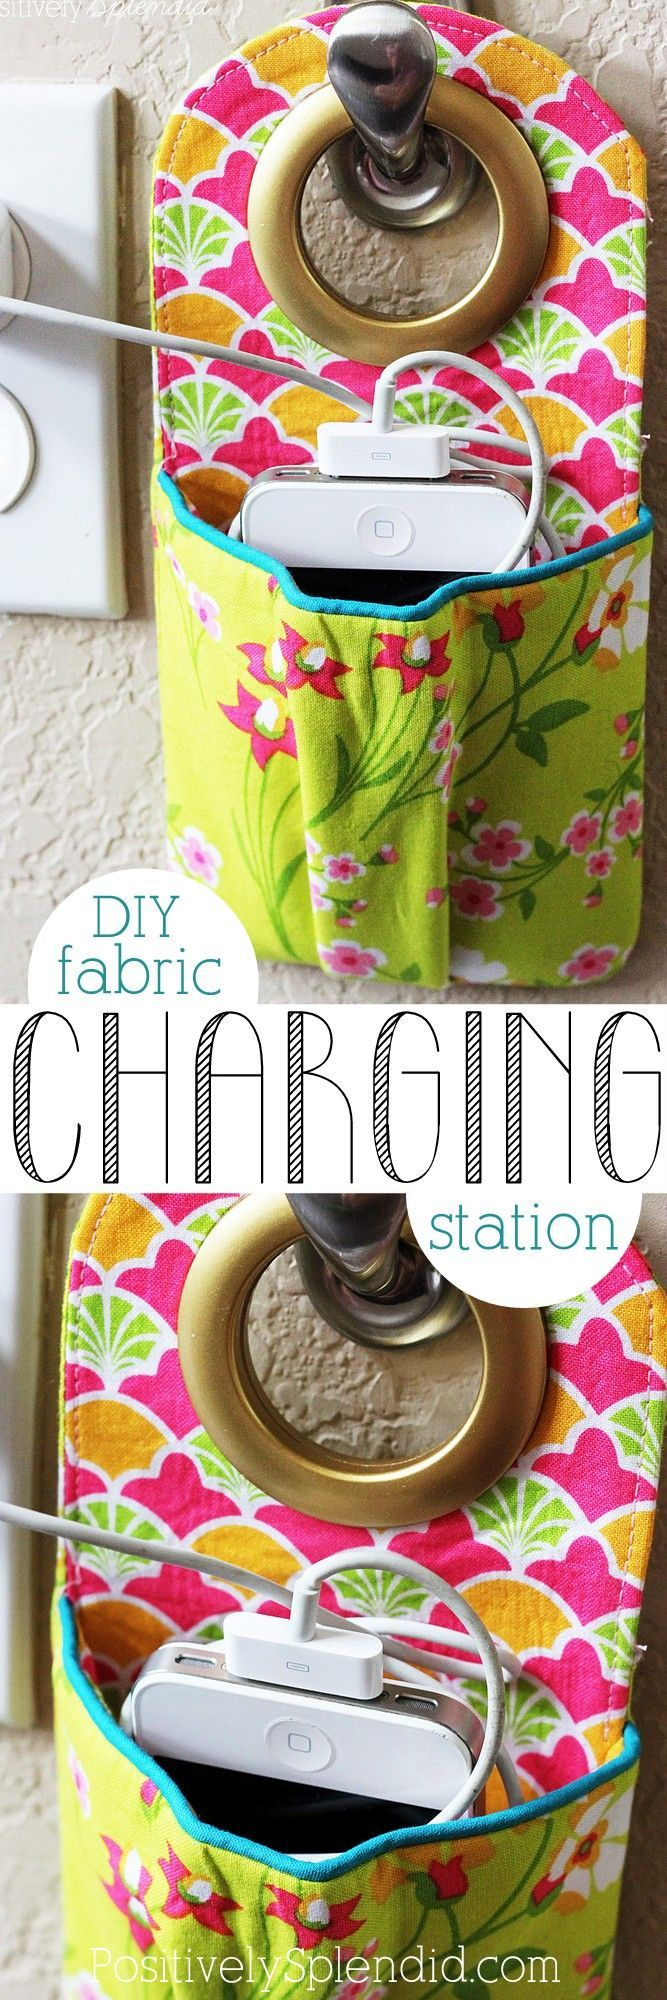 ❀ Fabric Phone Charging Station - Free PDF Pattern by Amy of Positively Splendid. Check out Pattern Pile also.